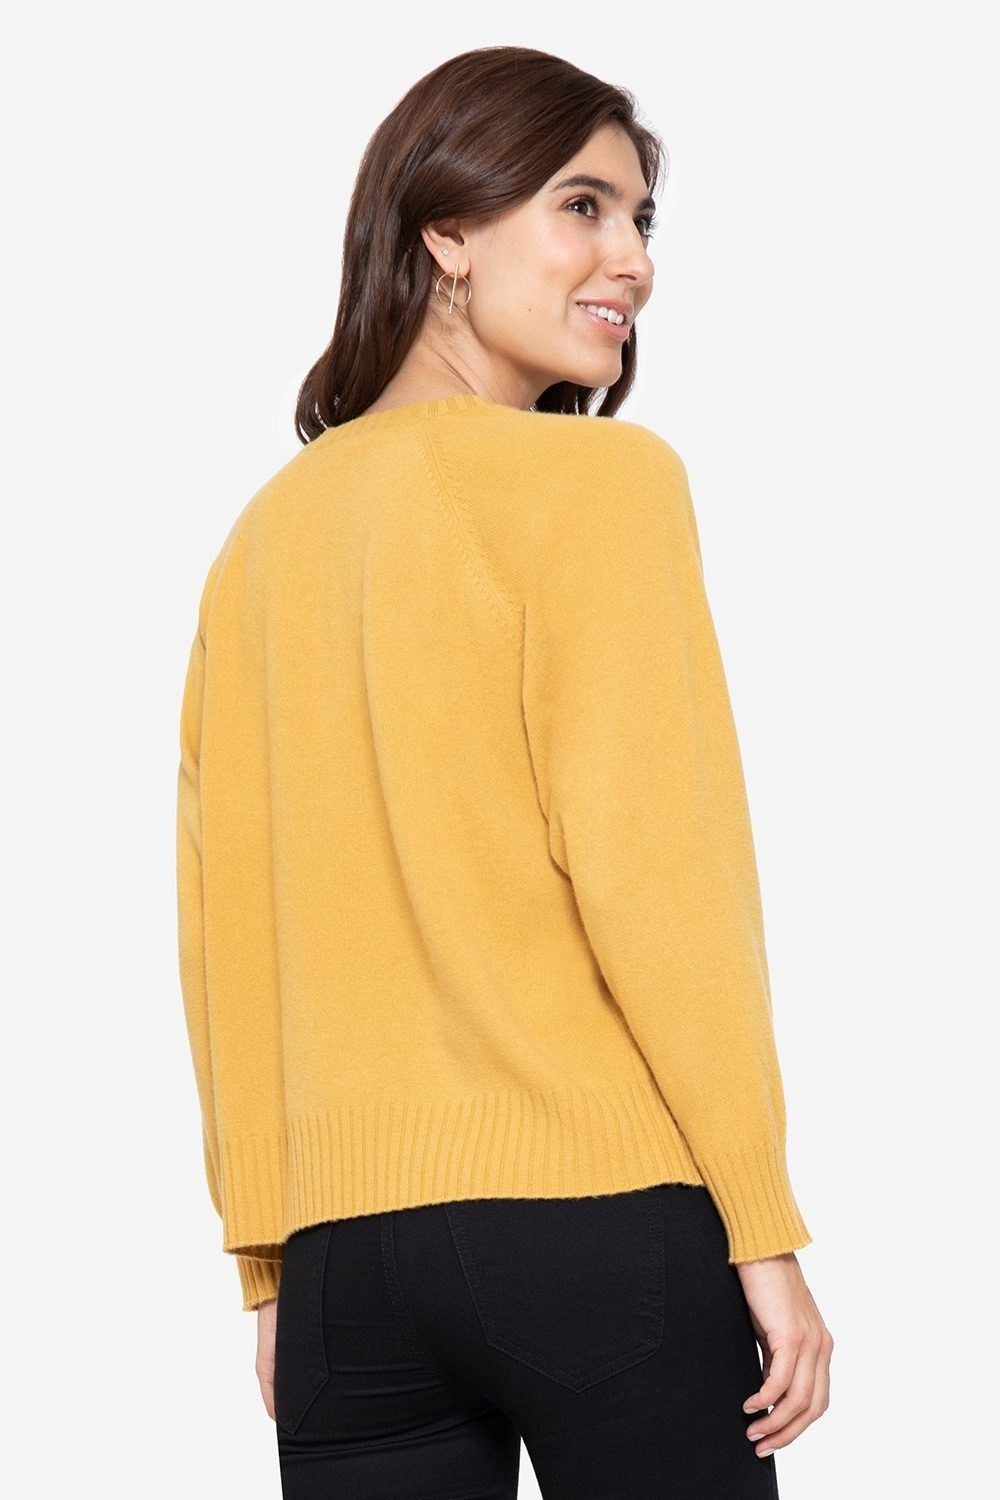 Soft cashmere nursing jumper in yellow with buttons, back view